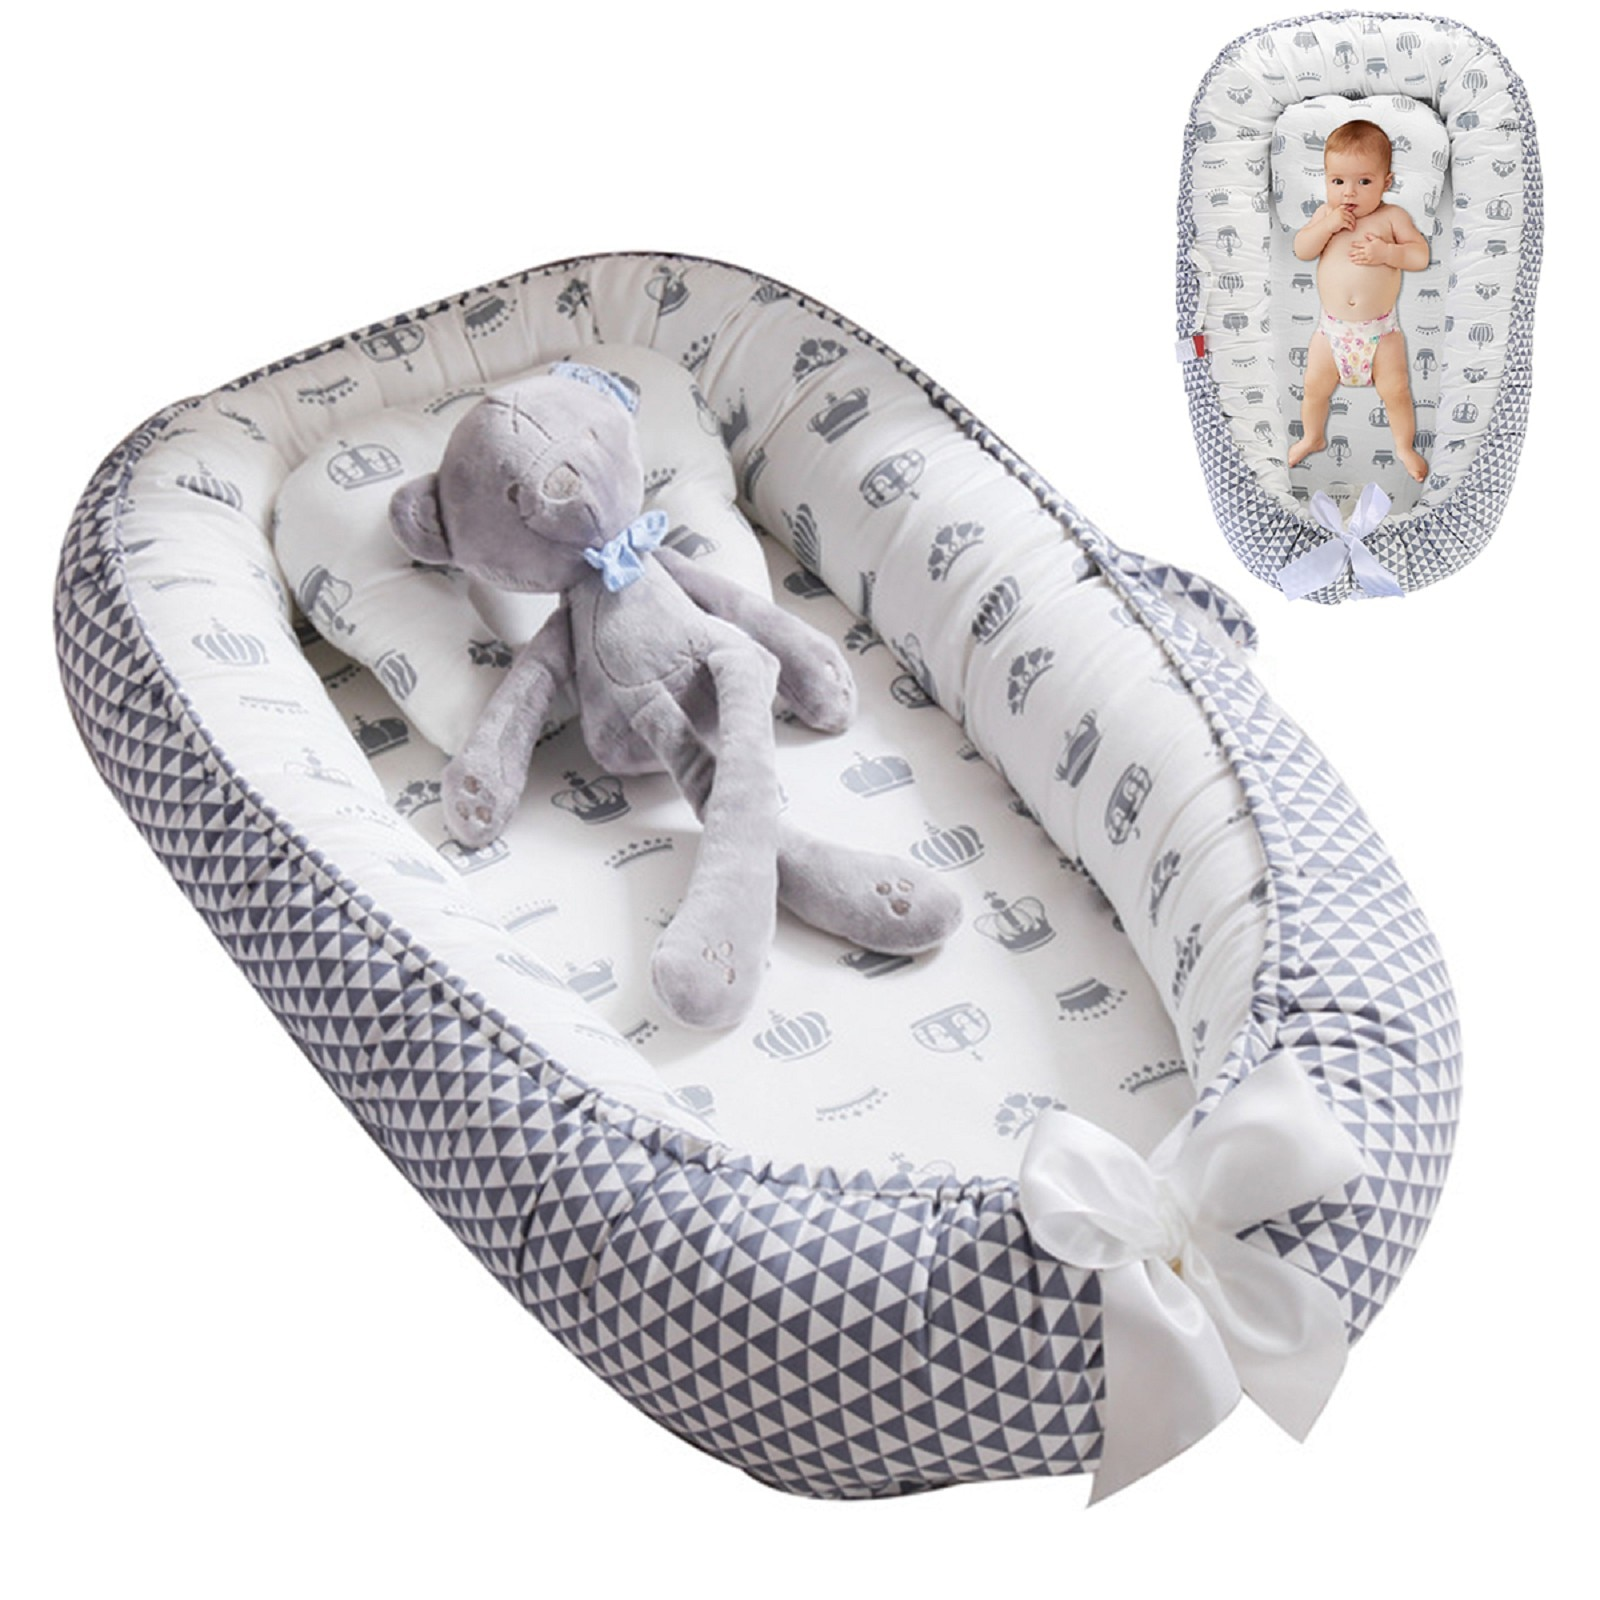 53 * 88cm 0-1Y Cotton Crib Baby Lounger For 0-1Y Baby Bassinet Co-Sleeping Hypoallergenic Washable Portable Bed